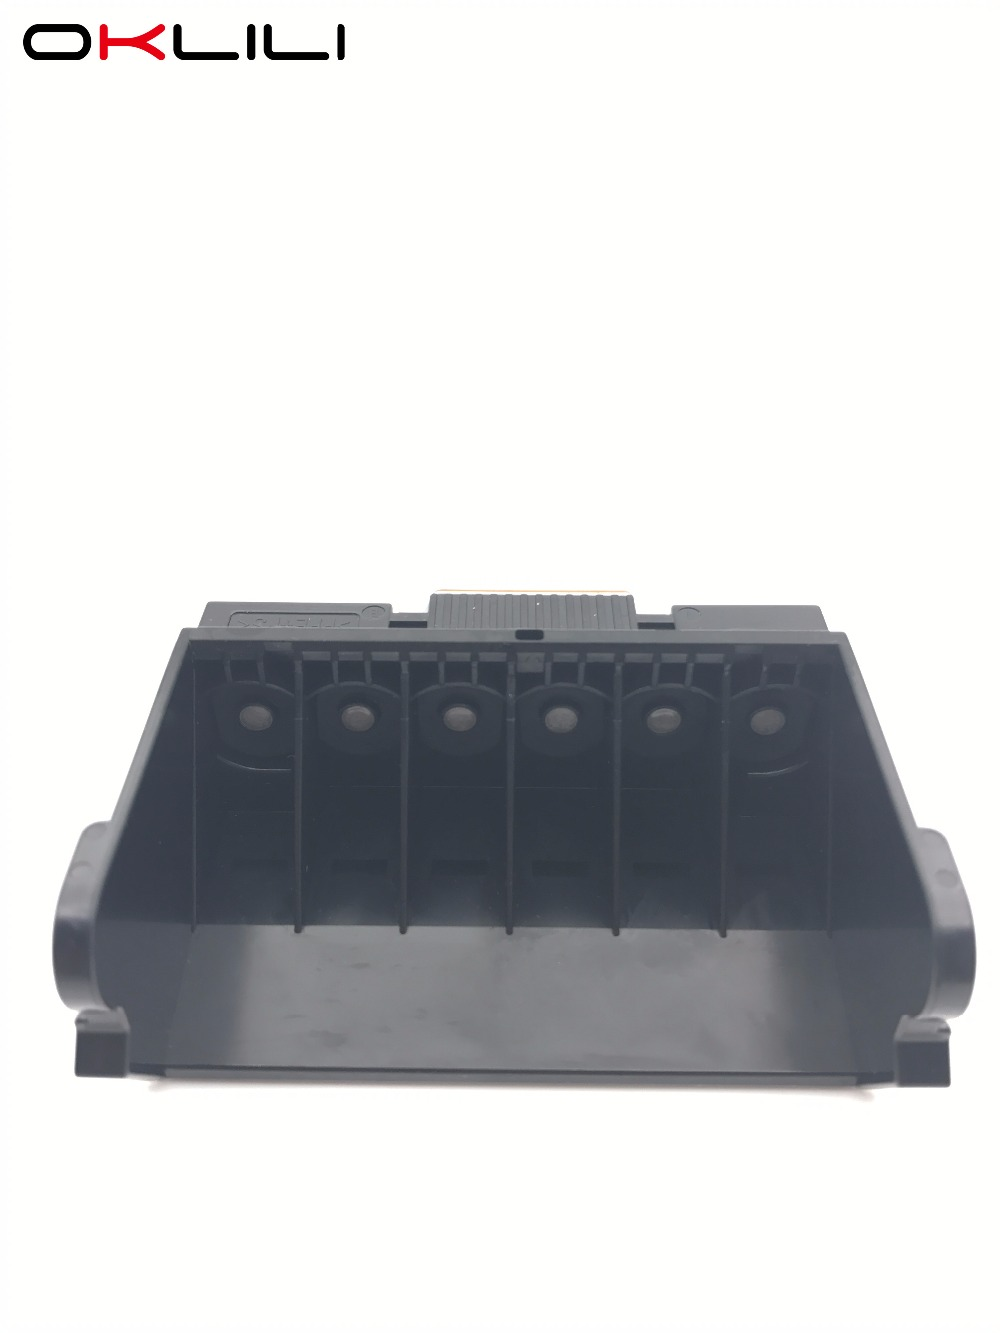 OKLILI ORIGINAL QY6-0063 QY6-0063-000 Printhead Print Head Printer Head for Canon iP6600D iP6700D iP6600 iP6700 original refurbished print head qy6 0039 printhead compatible for canon s900 s9000 i9100 bjf9000 f900 f930 printer head